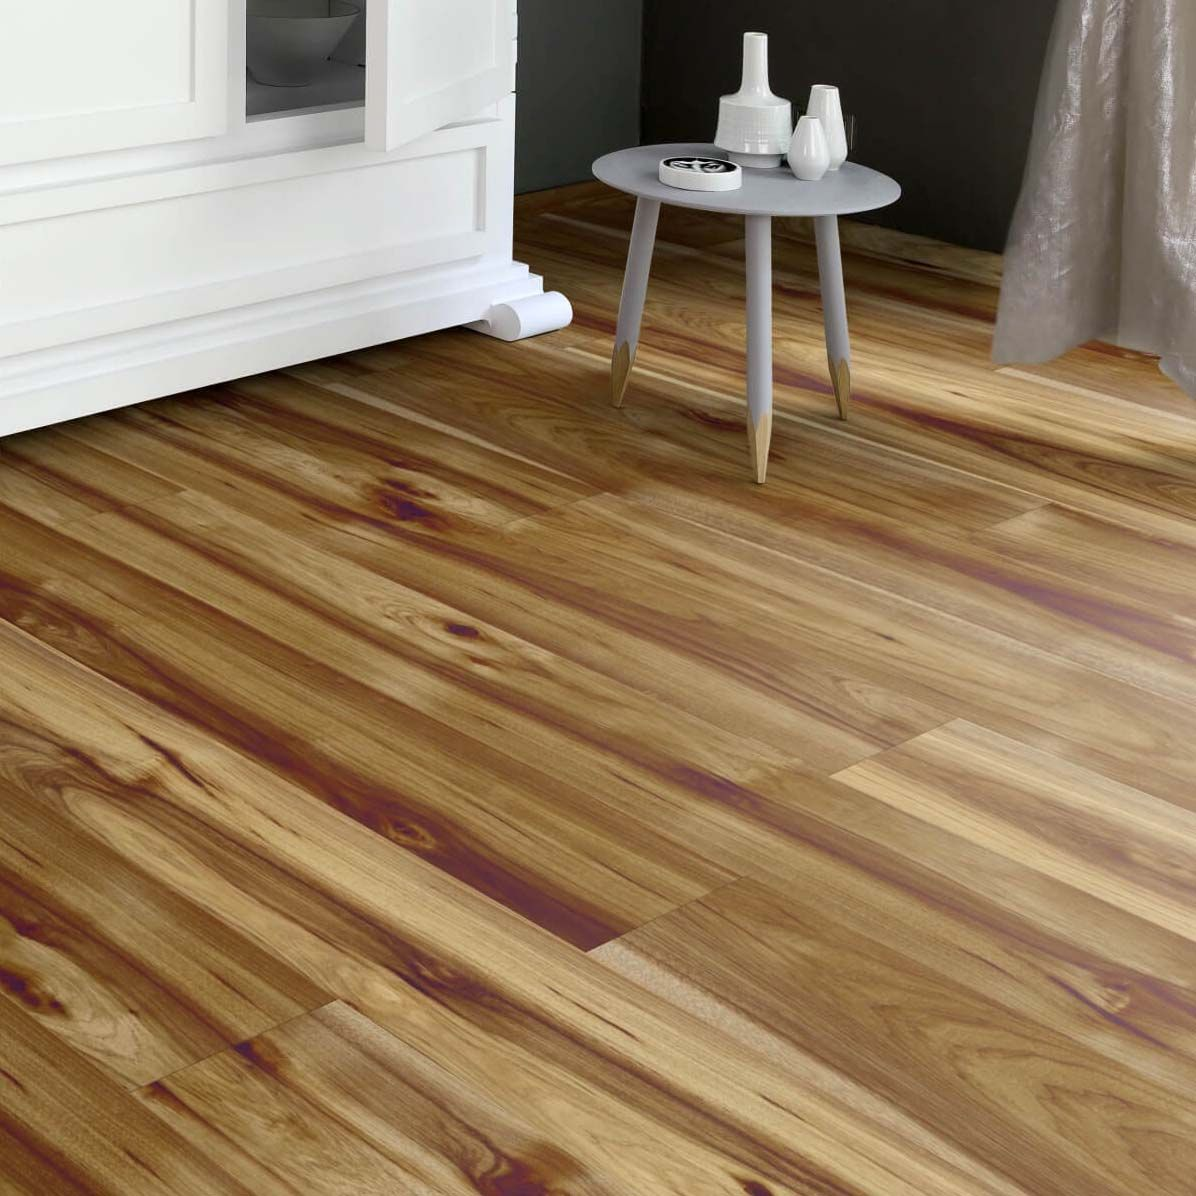 Express Floor 10mm Louisiana Pine 4v 1 76sqm In 2020 Flooring Timber Flooring Pine Timber